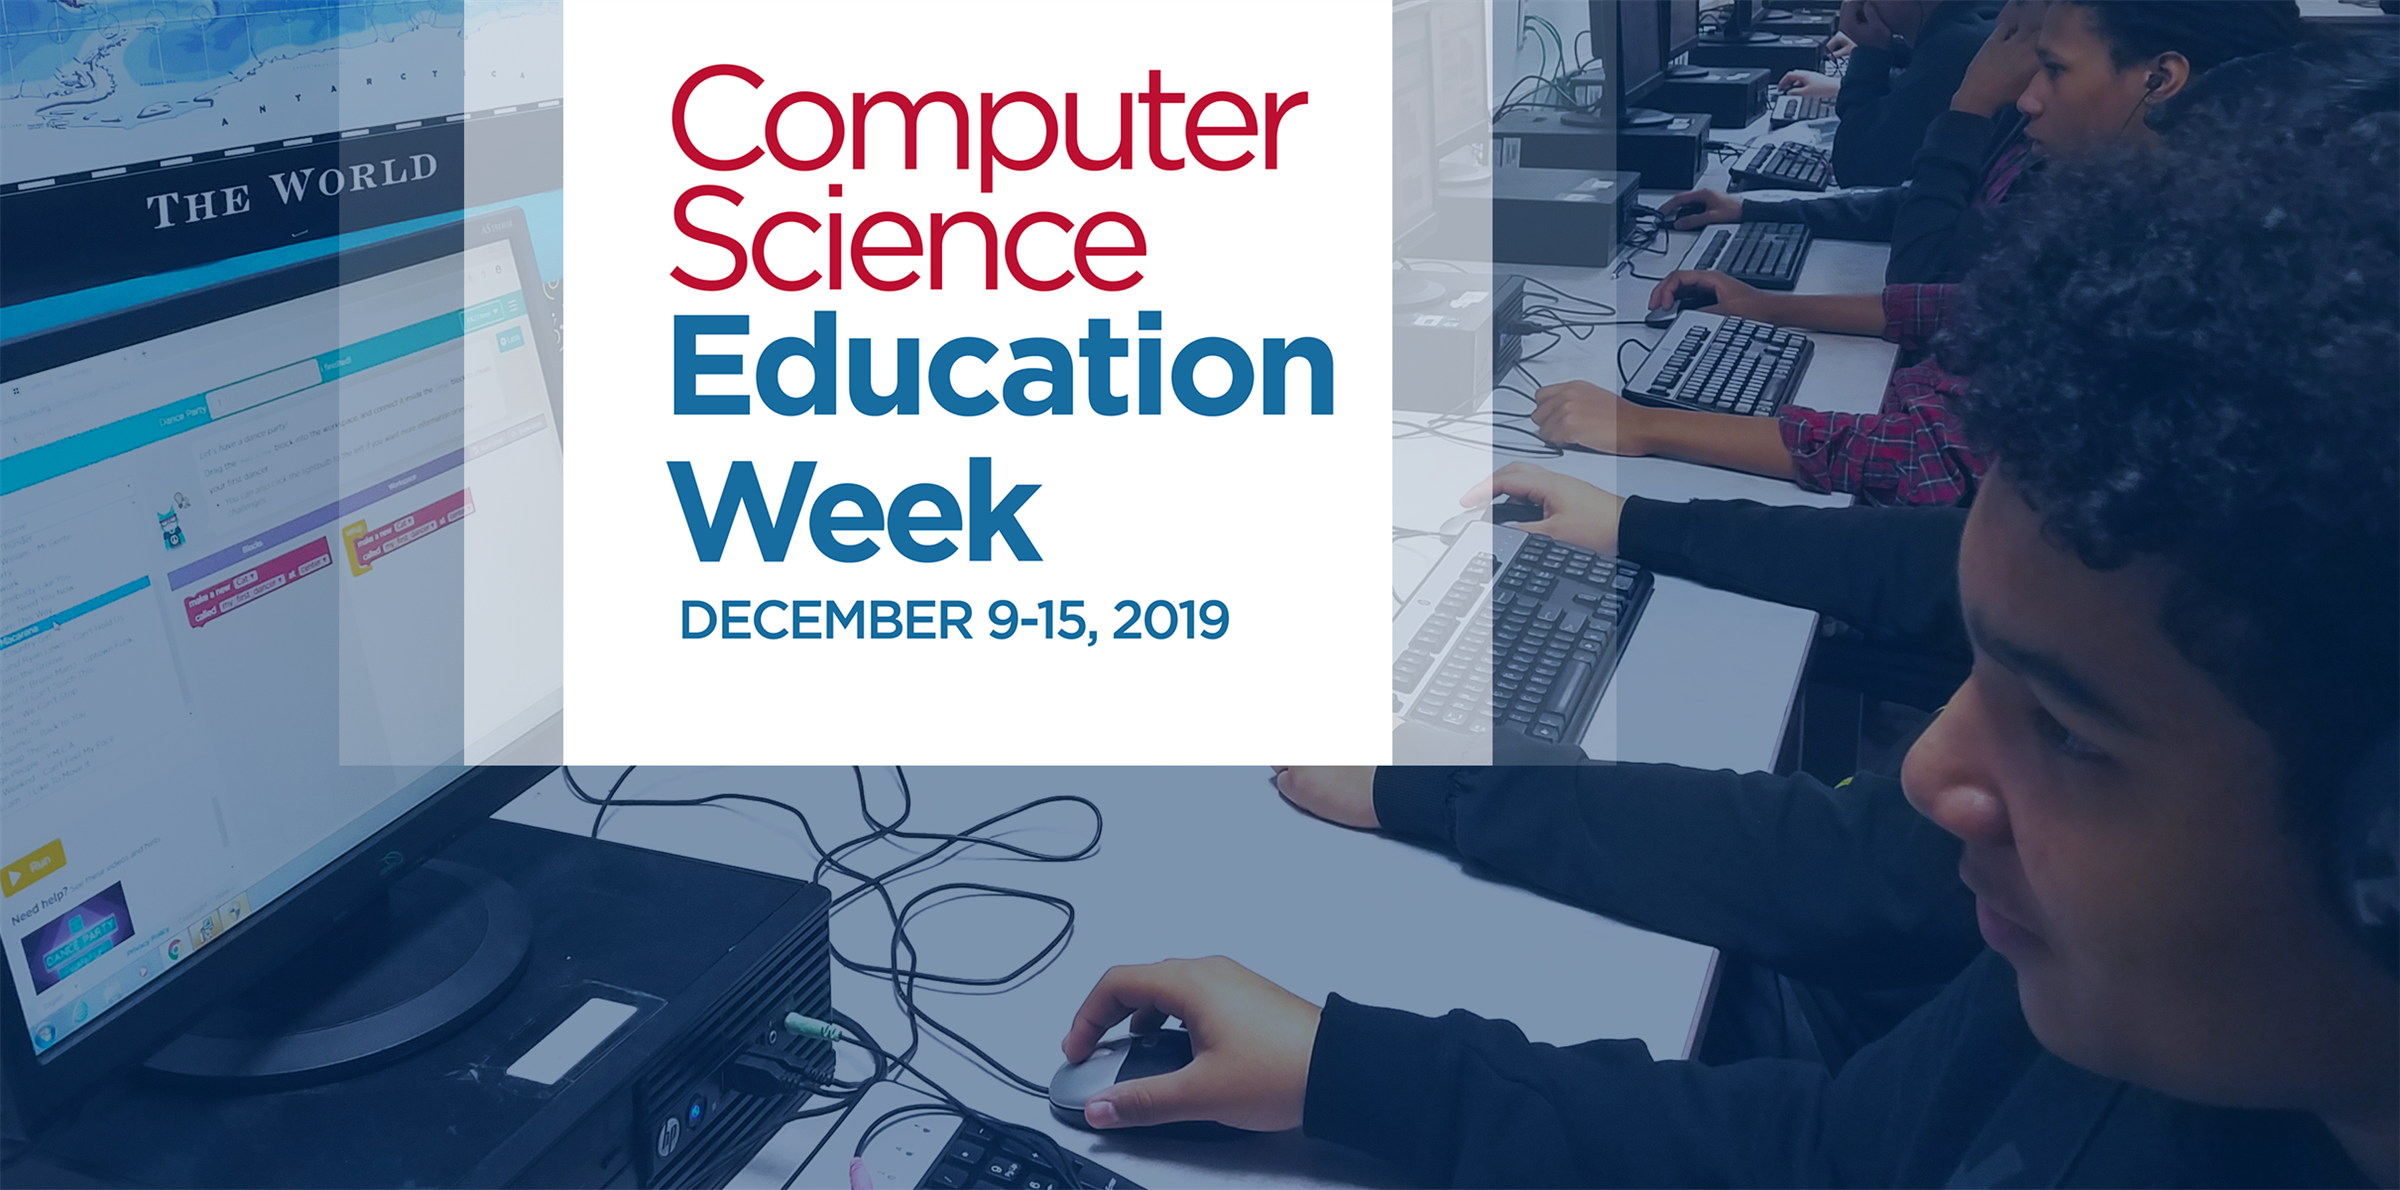 Computer Science Education Week December 9-15, 2019 at Gilbert Public Schools